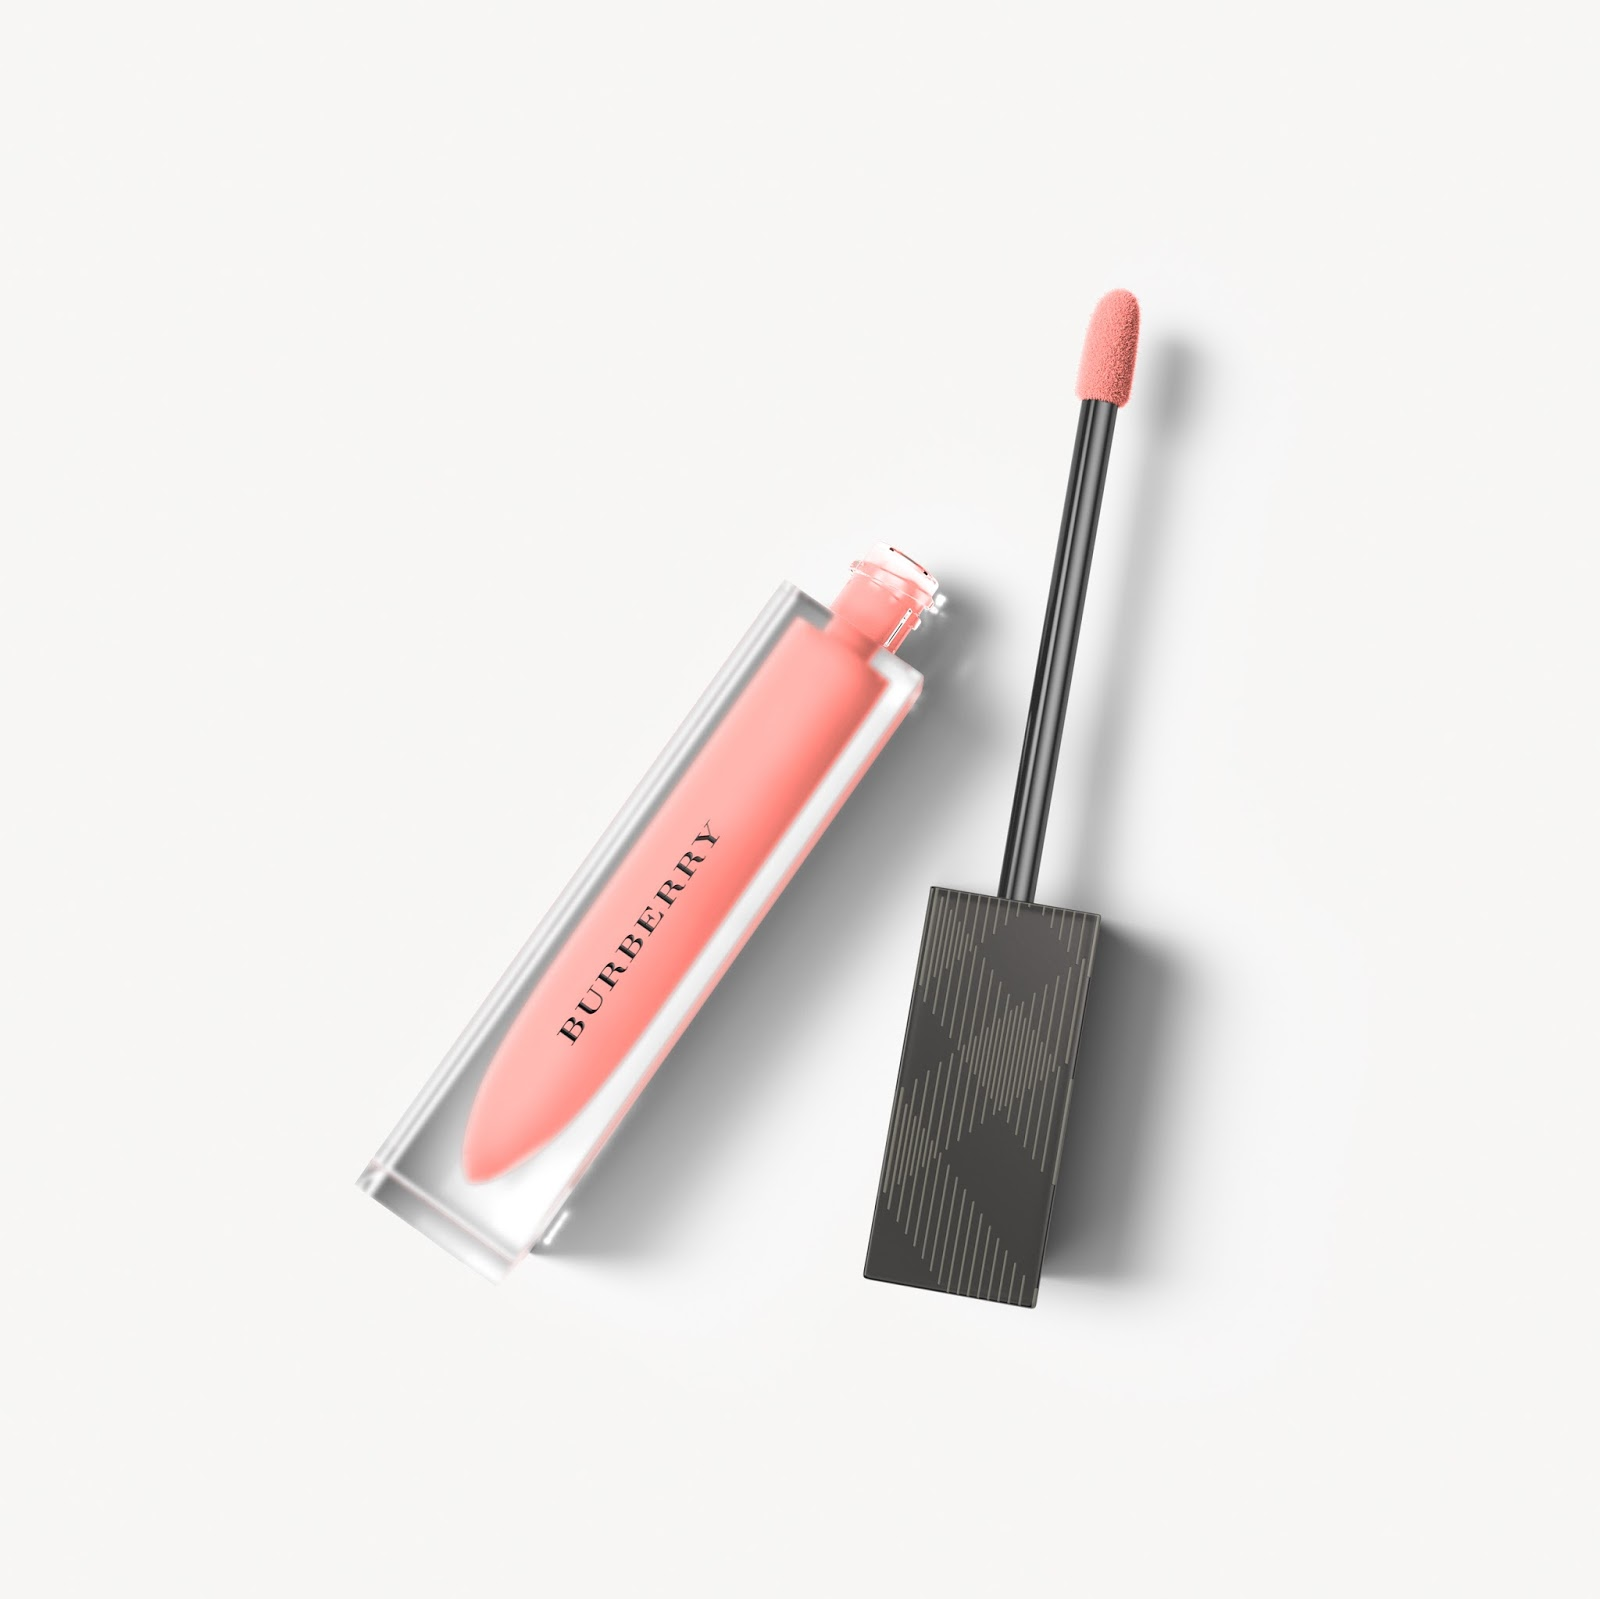 Burberry Liquid Lip Velvet iris law peach no 25